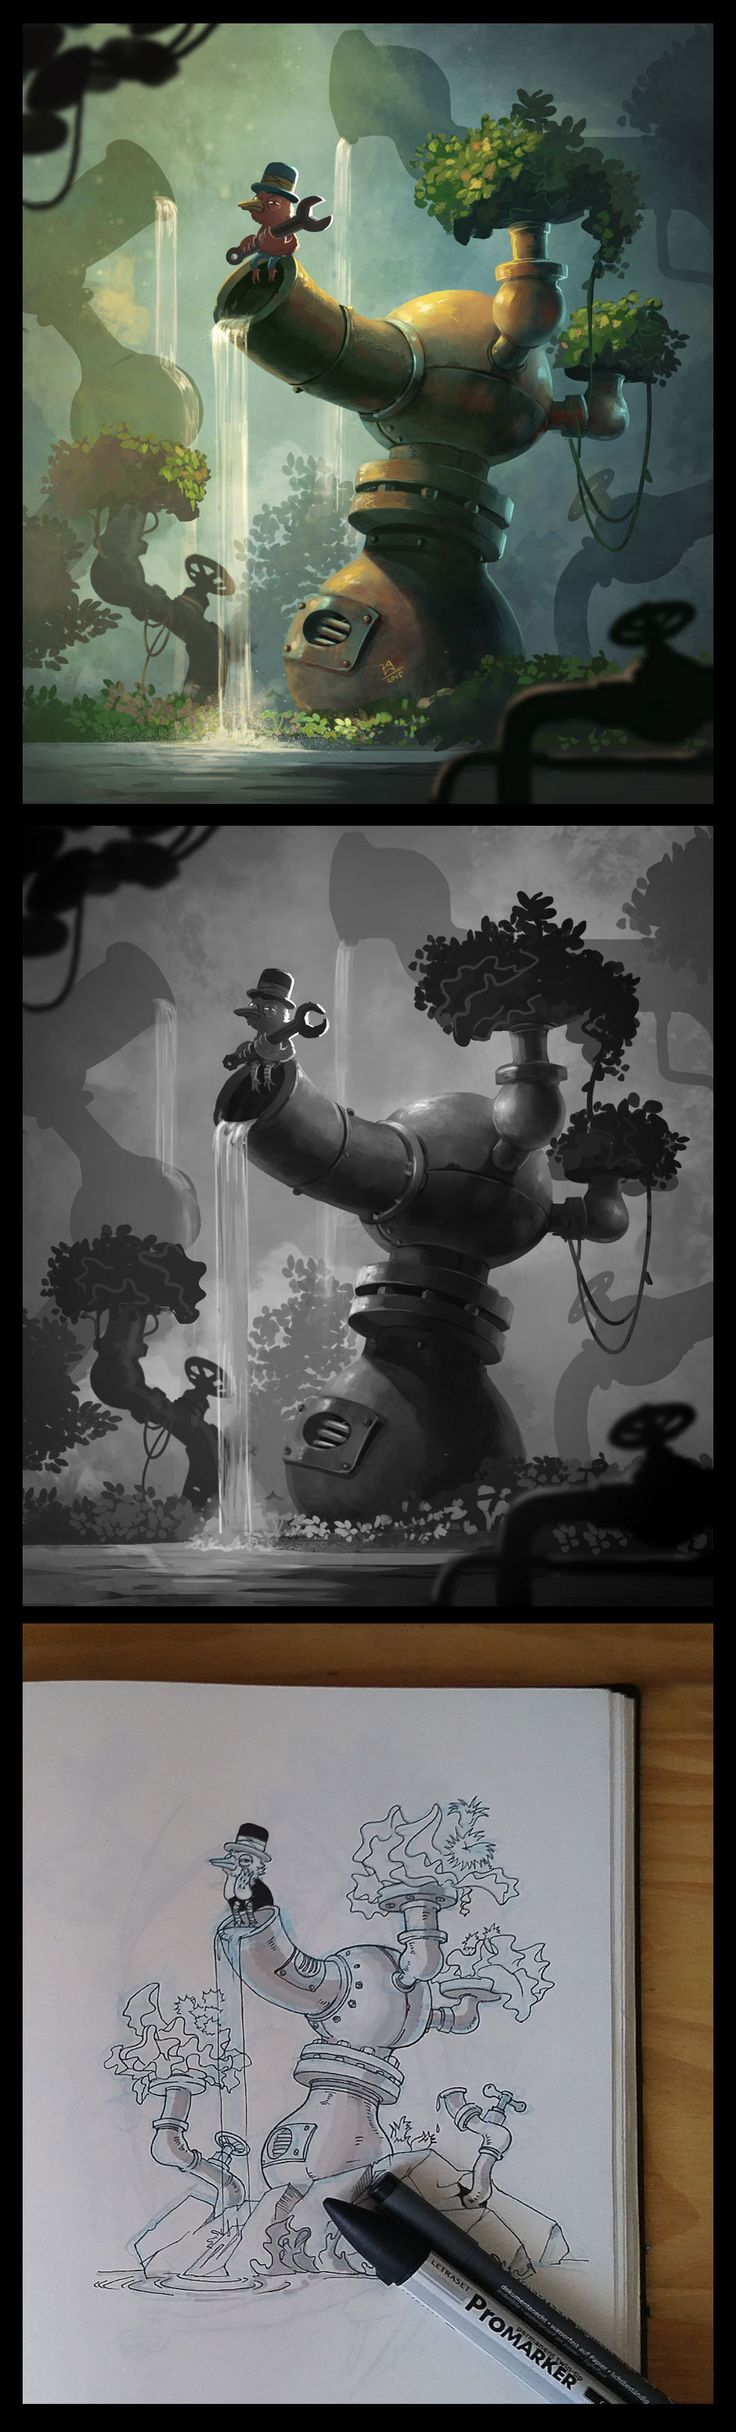 The cloud appreciation club fimfiction - Guardian Of The Sewers On Behance